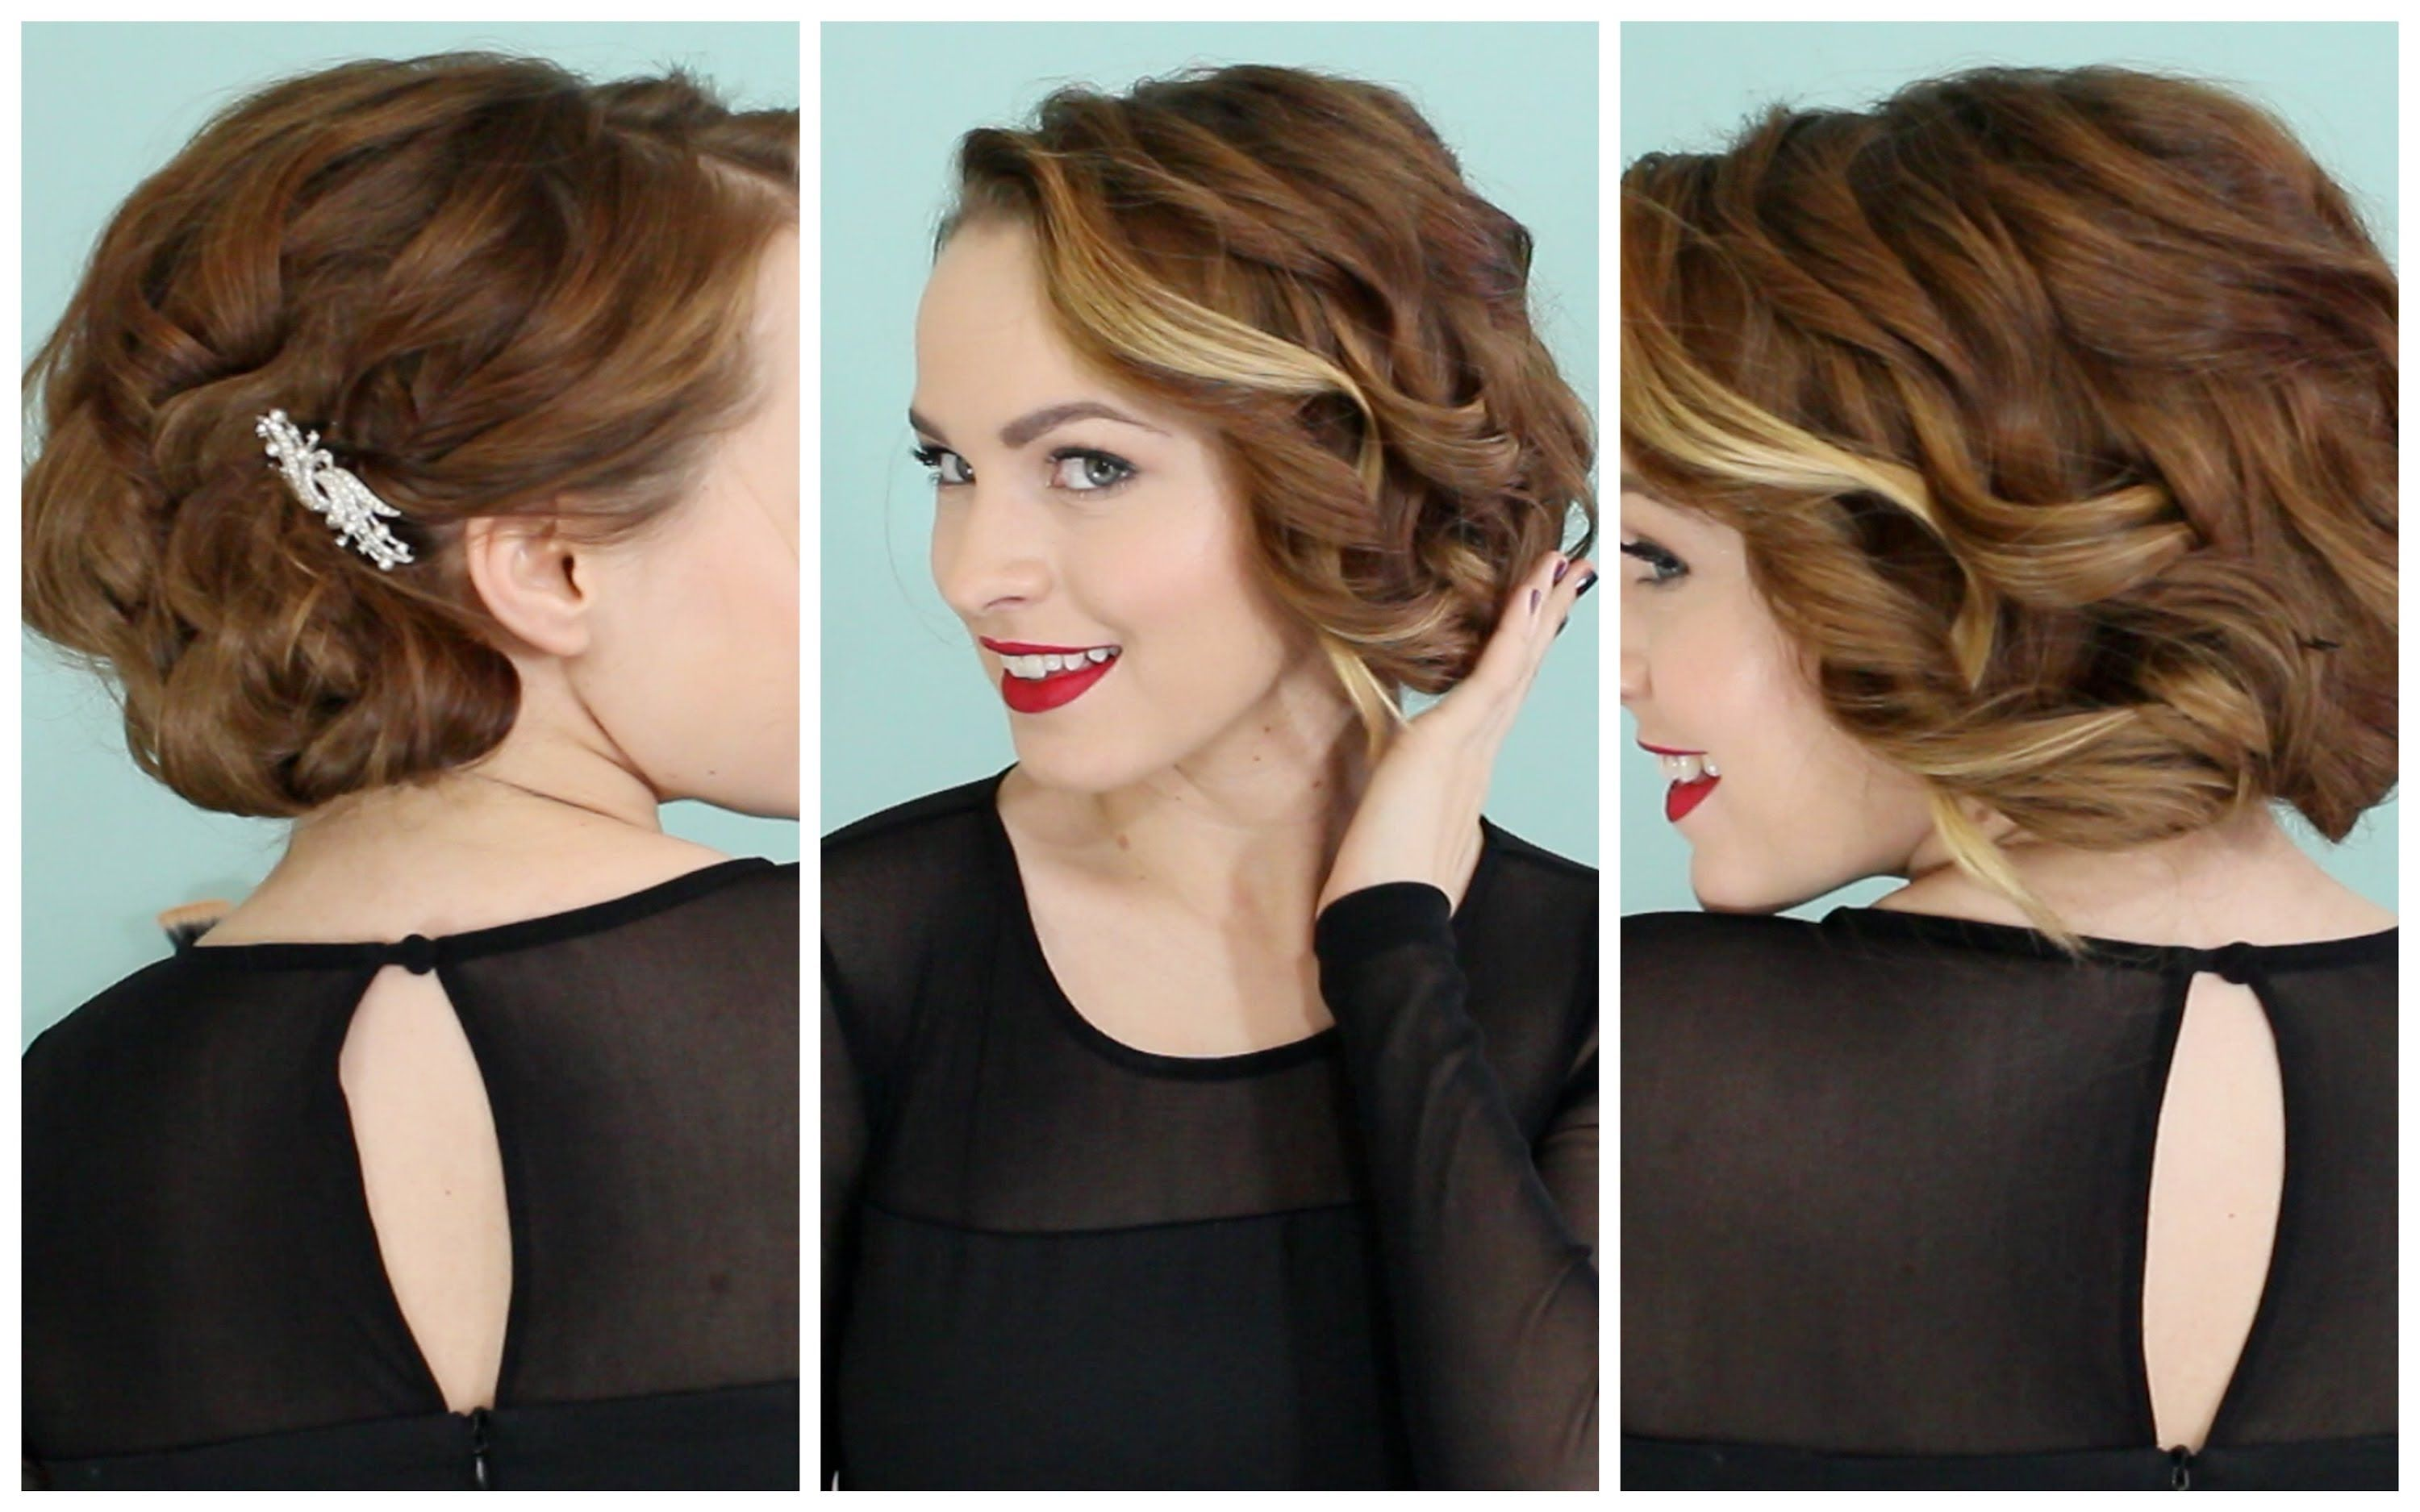 Stupendous Top 25 Ideas About Short Cuts On Pinterest Bobs My Hair And Short Hairstyles Gunalazisus